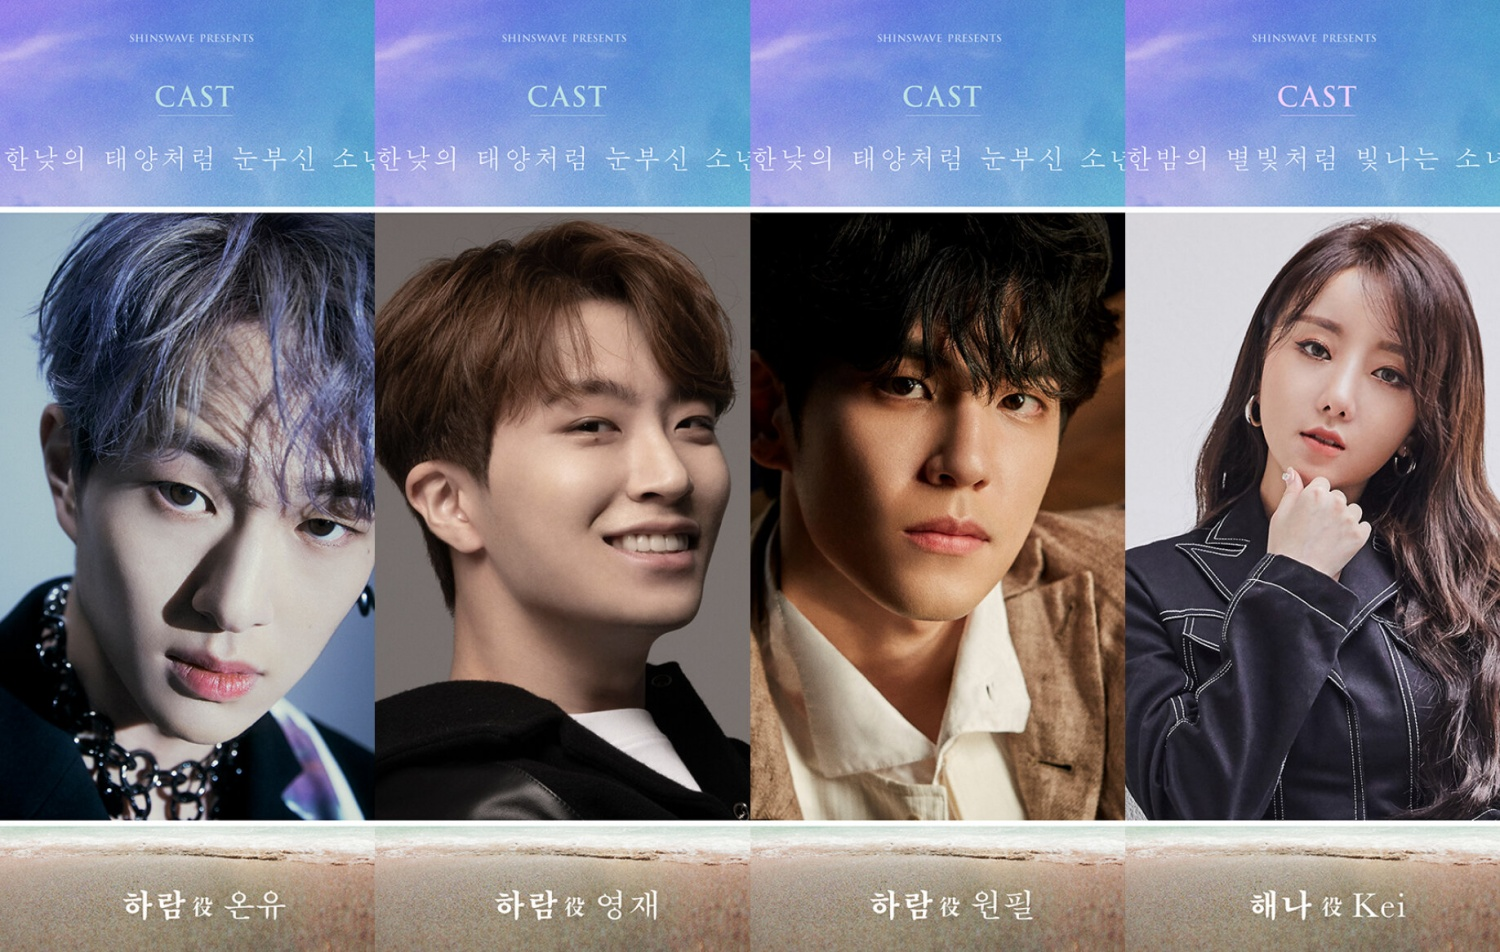 SHINee Onew, GOT7 Youngjae, DAY6 Wonpil, & Lovelyz Kei to Star in a Romance Musical